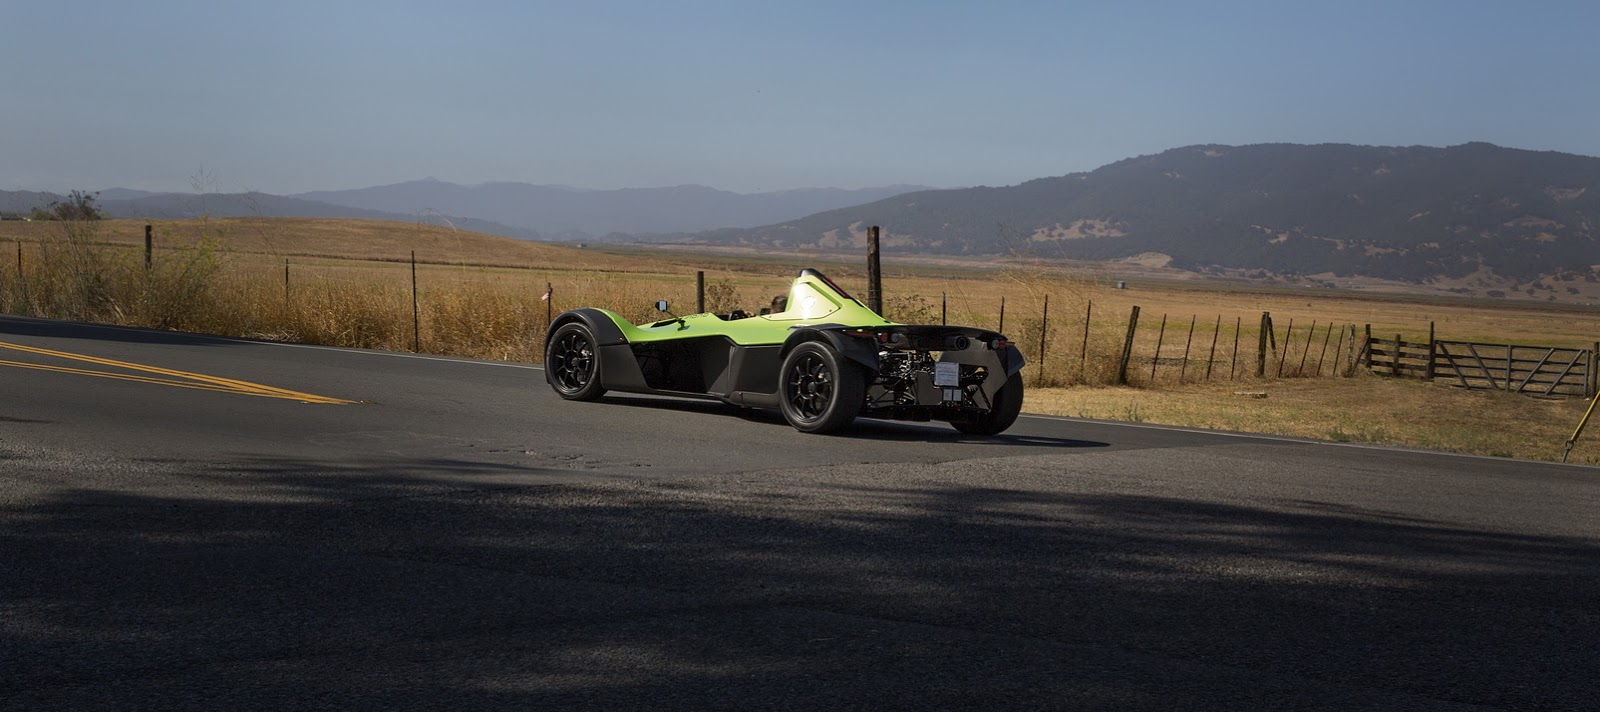 bac mang mau sieu xe mono single-seater supercar toi pebble beach hinh anh 2